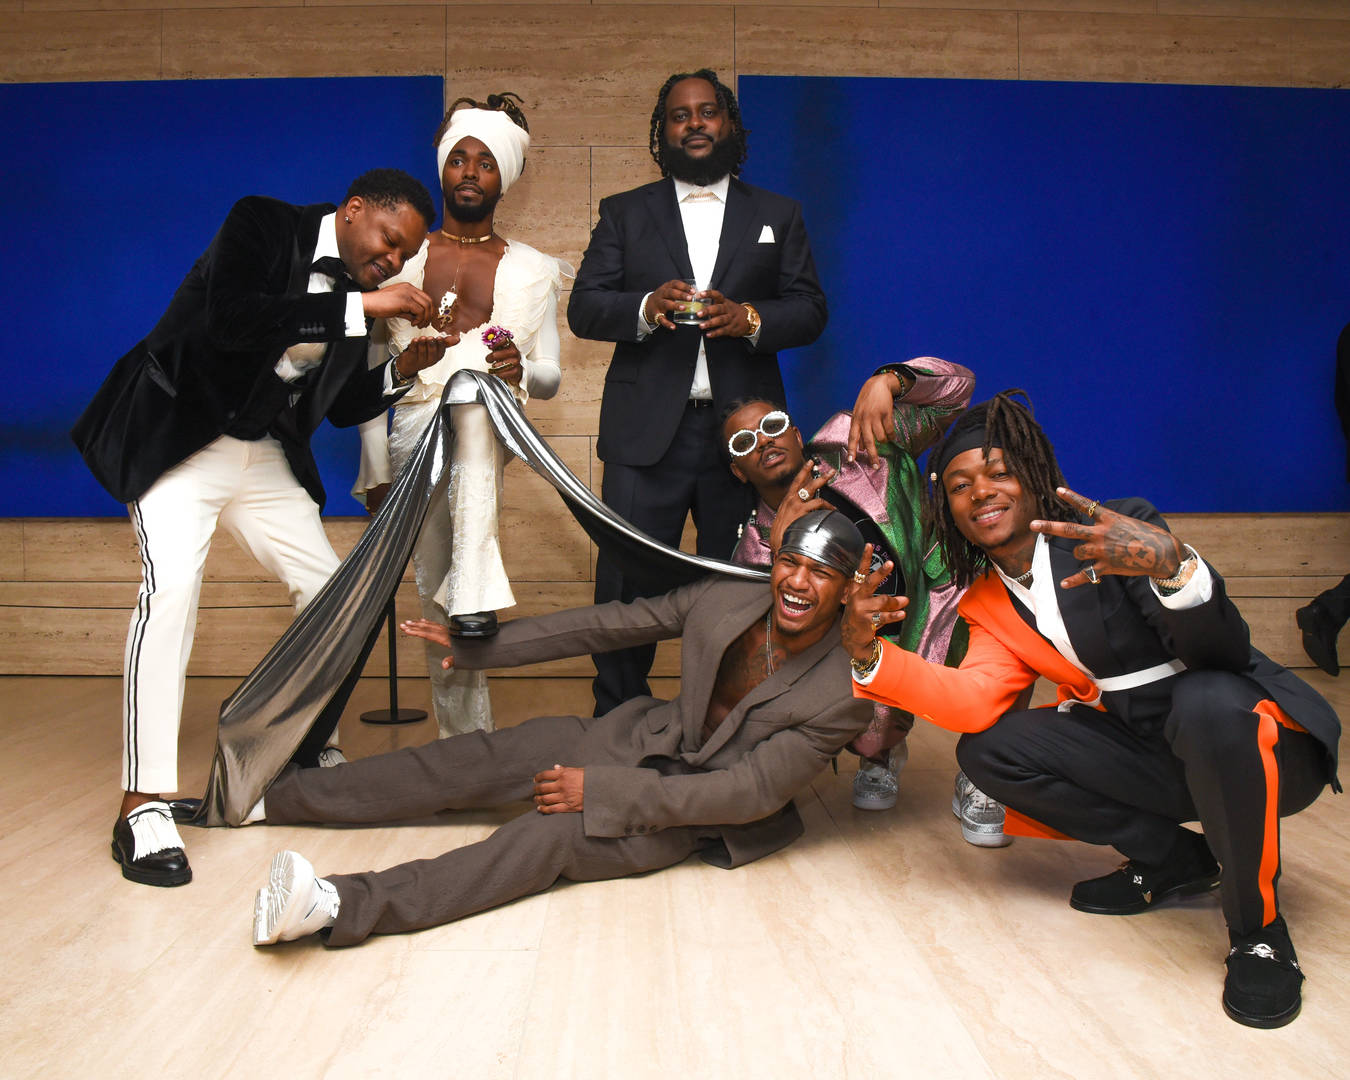 Dreamville's Grammy Afterparty: EarthGang, J.I.D, Omen, Lute & More